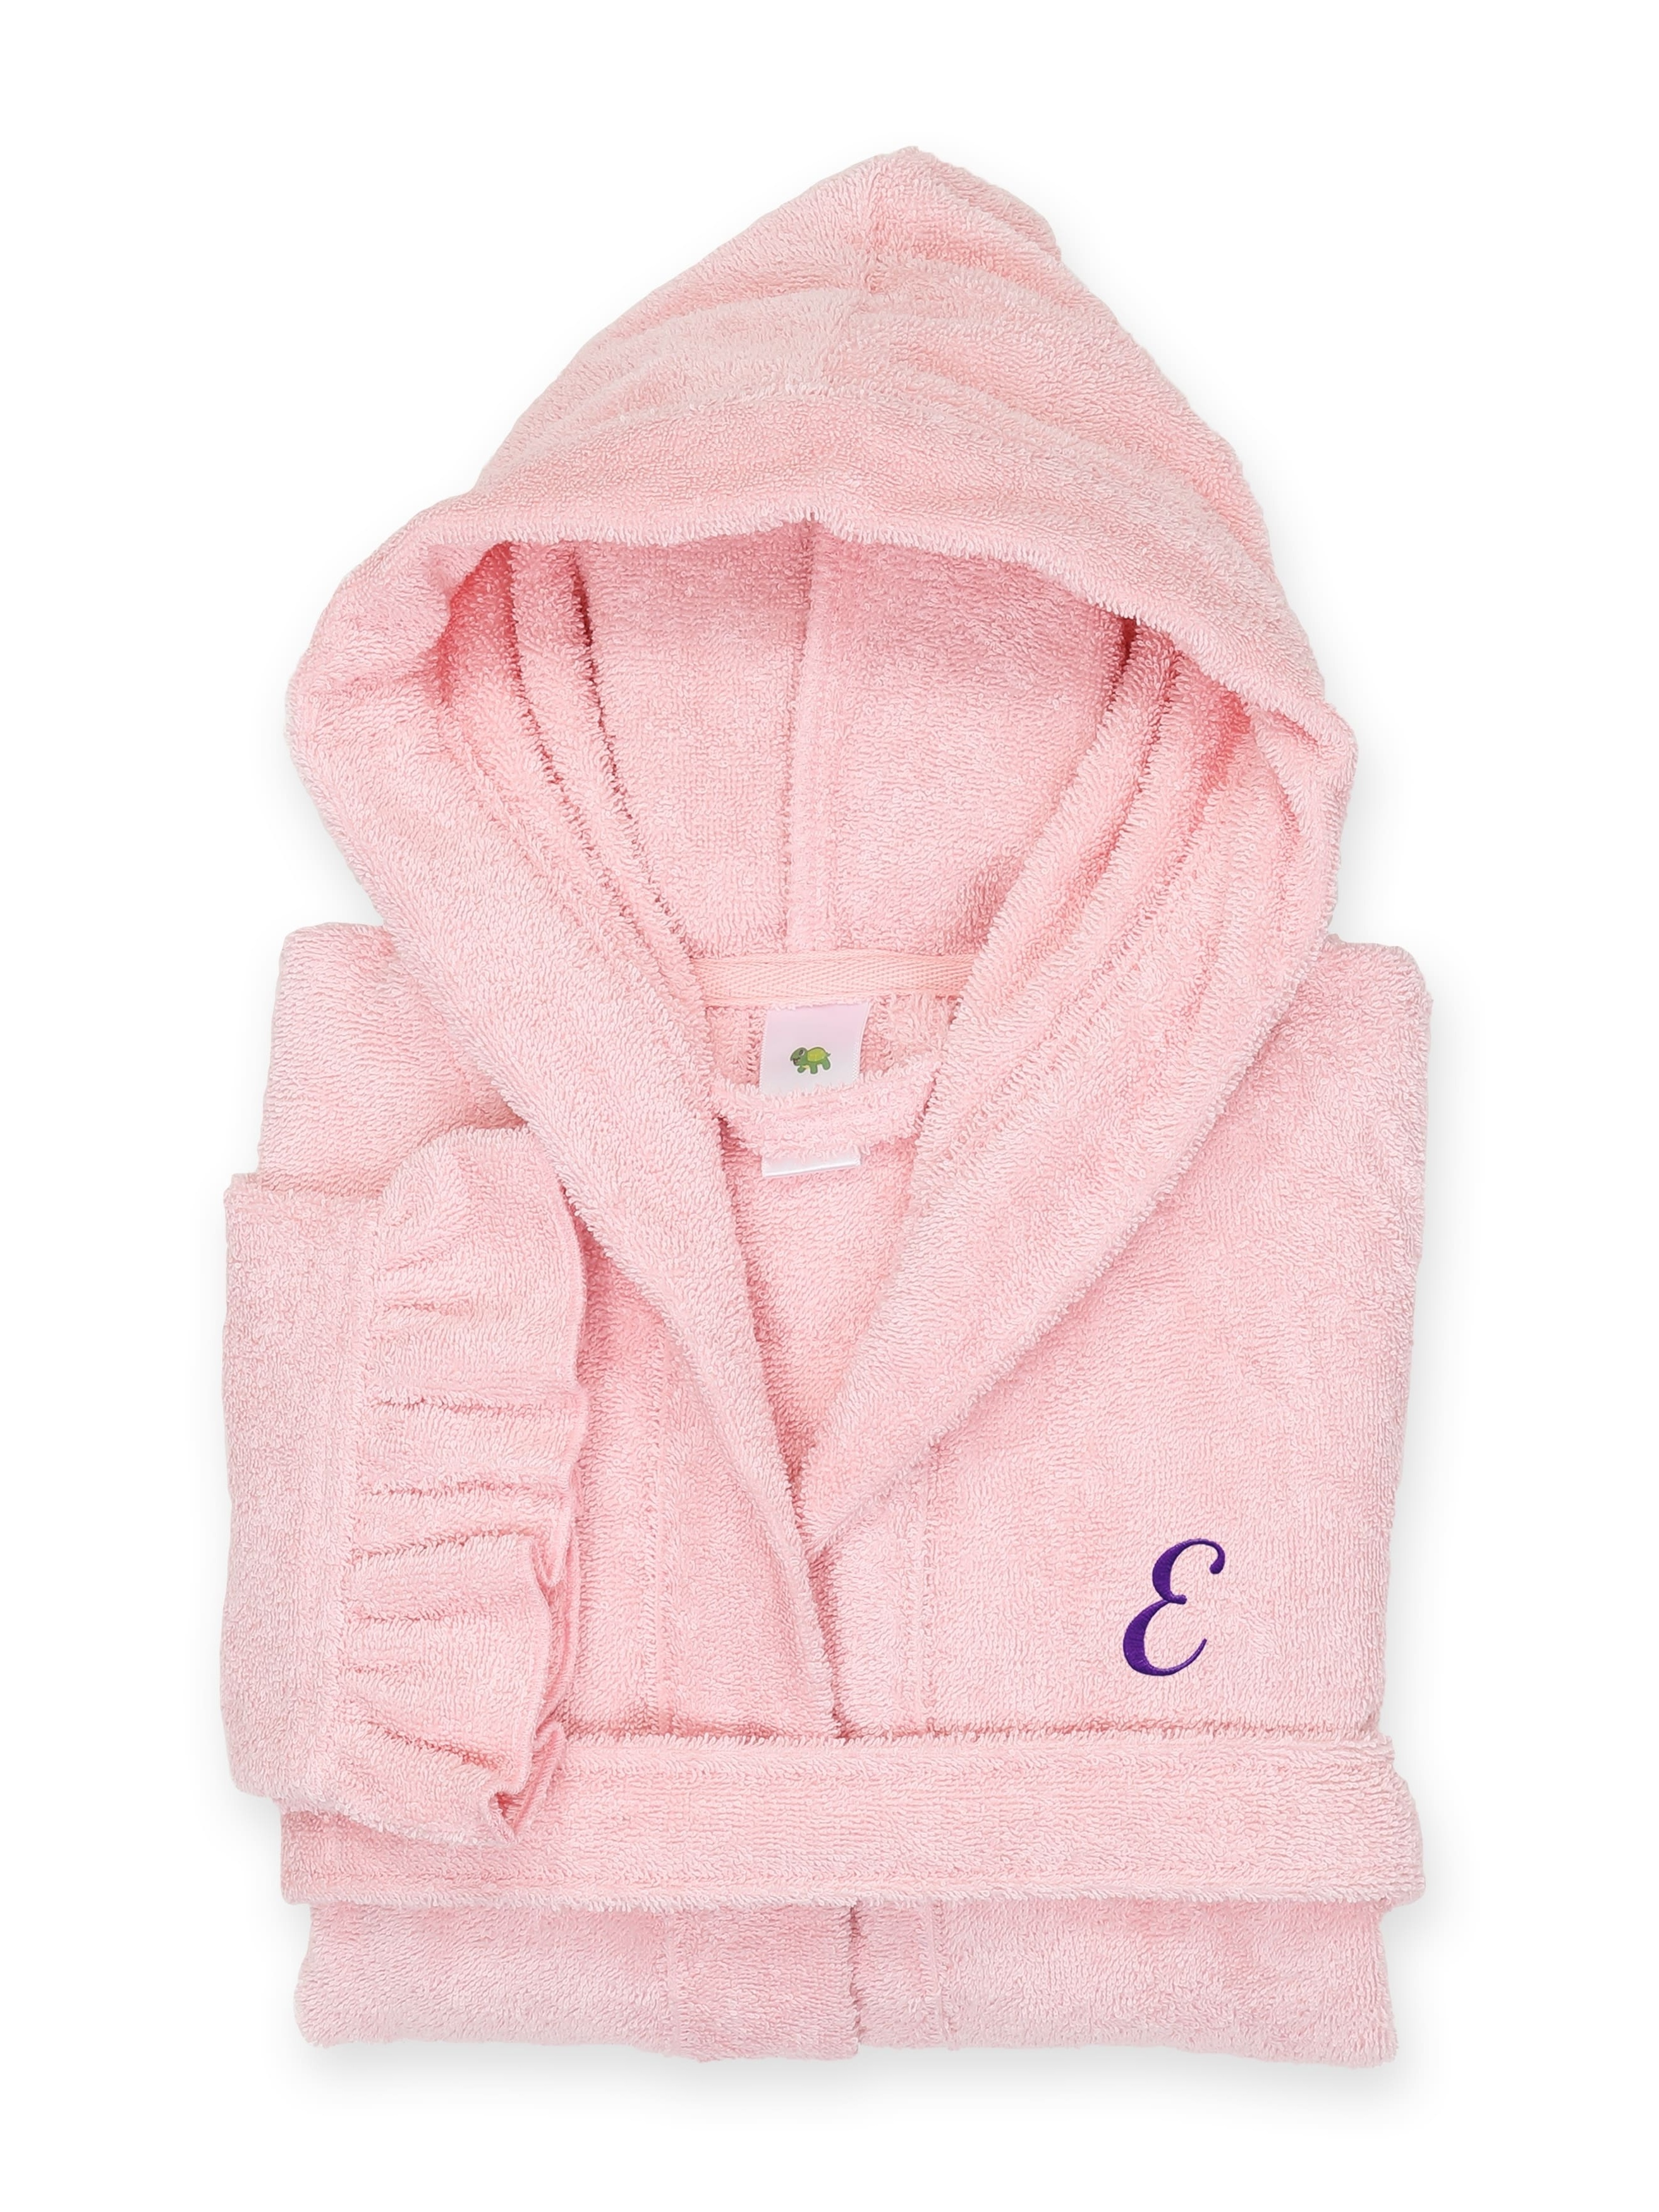 Linum Sweet Kids Ruffled Pink Turkish Cotton Hooded Terry Bathrobe with Purple Script Initial